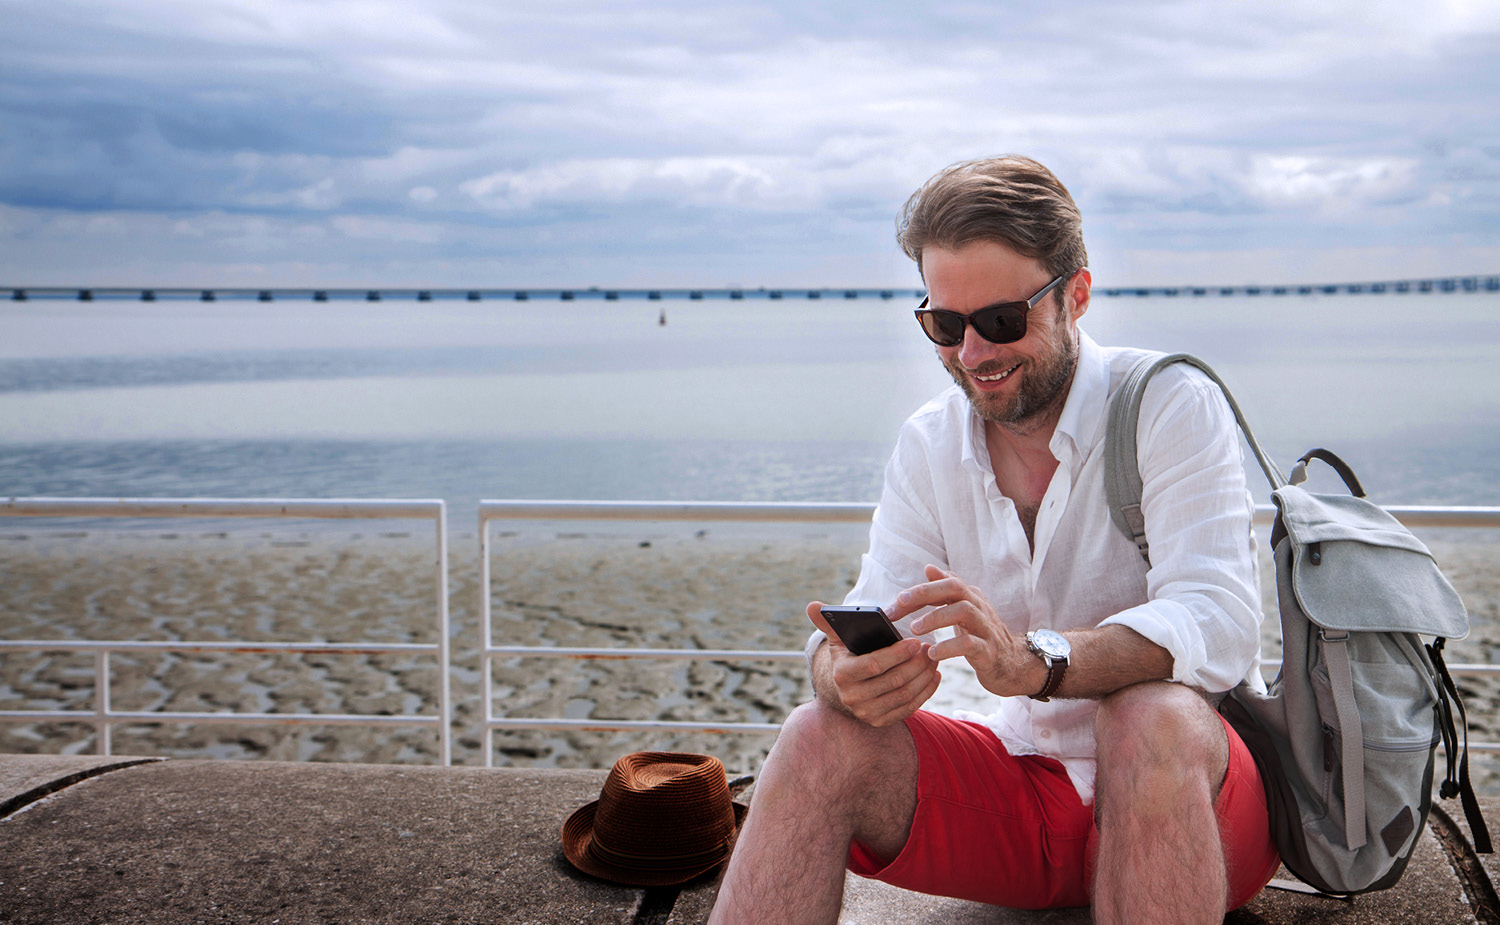 Man on an incentive travel trip smiling at his phone on the beach